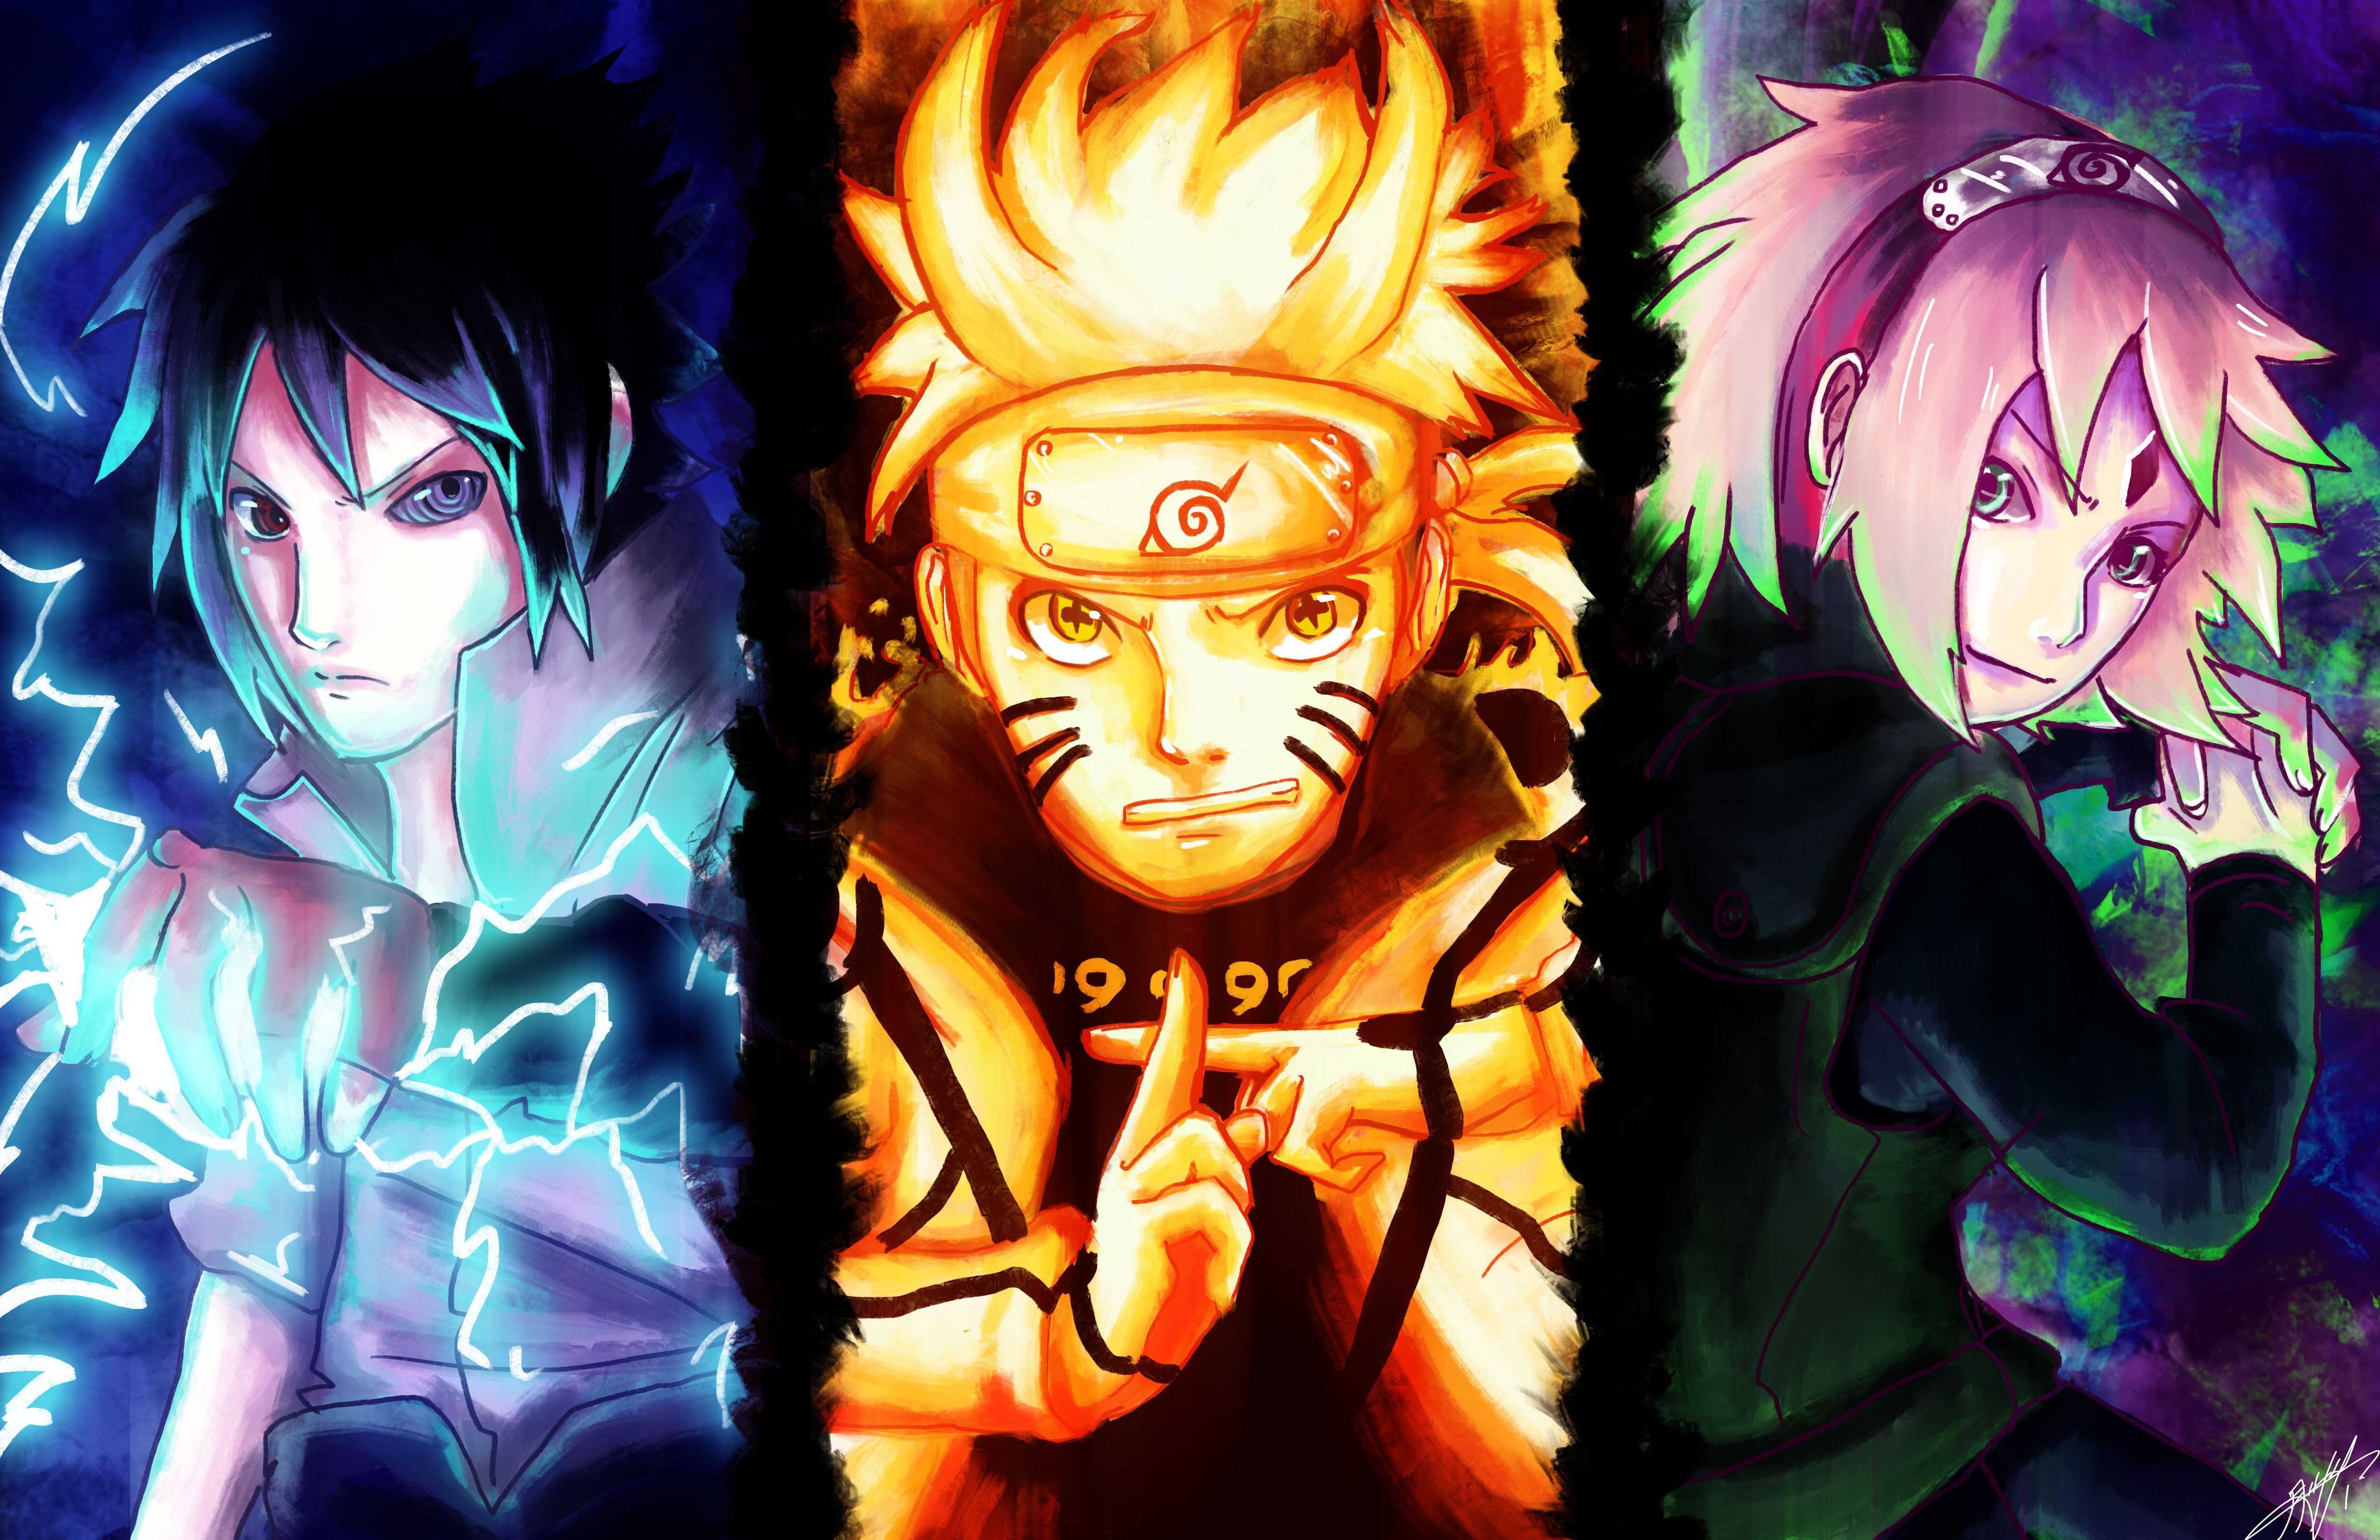 4k naruto wallpapers top free 4k naruto backgrounds - Best anime desktop backgrounds ...